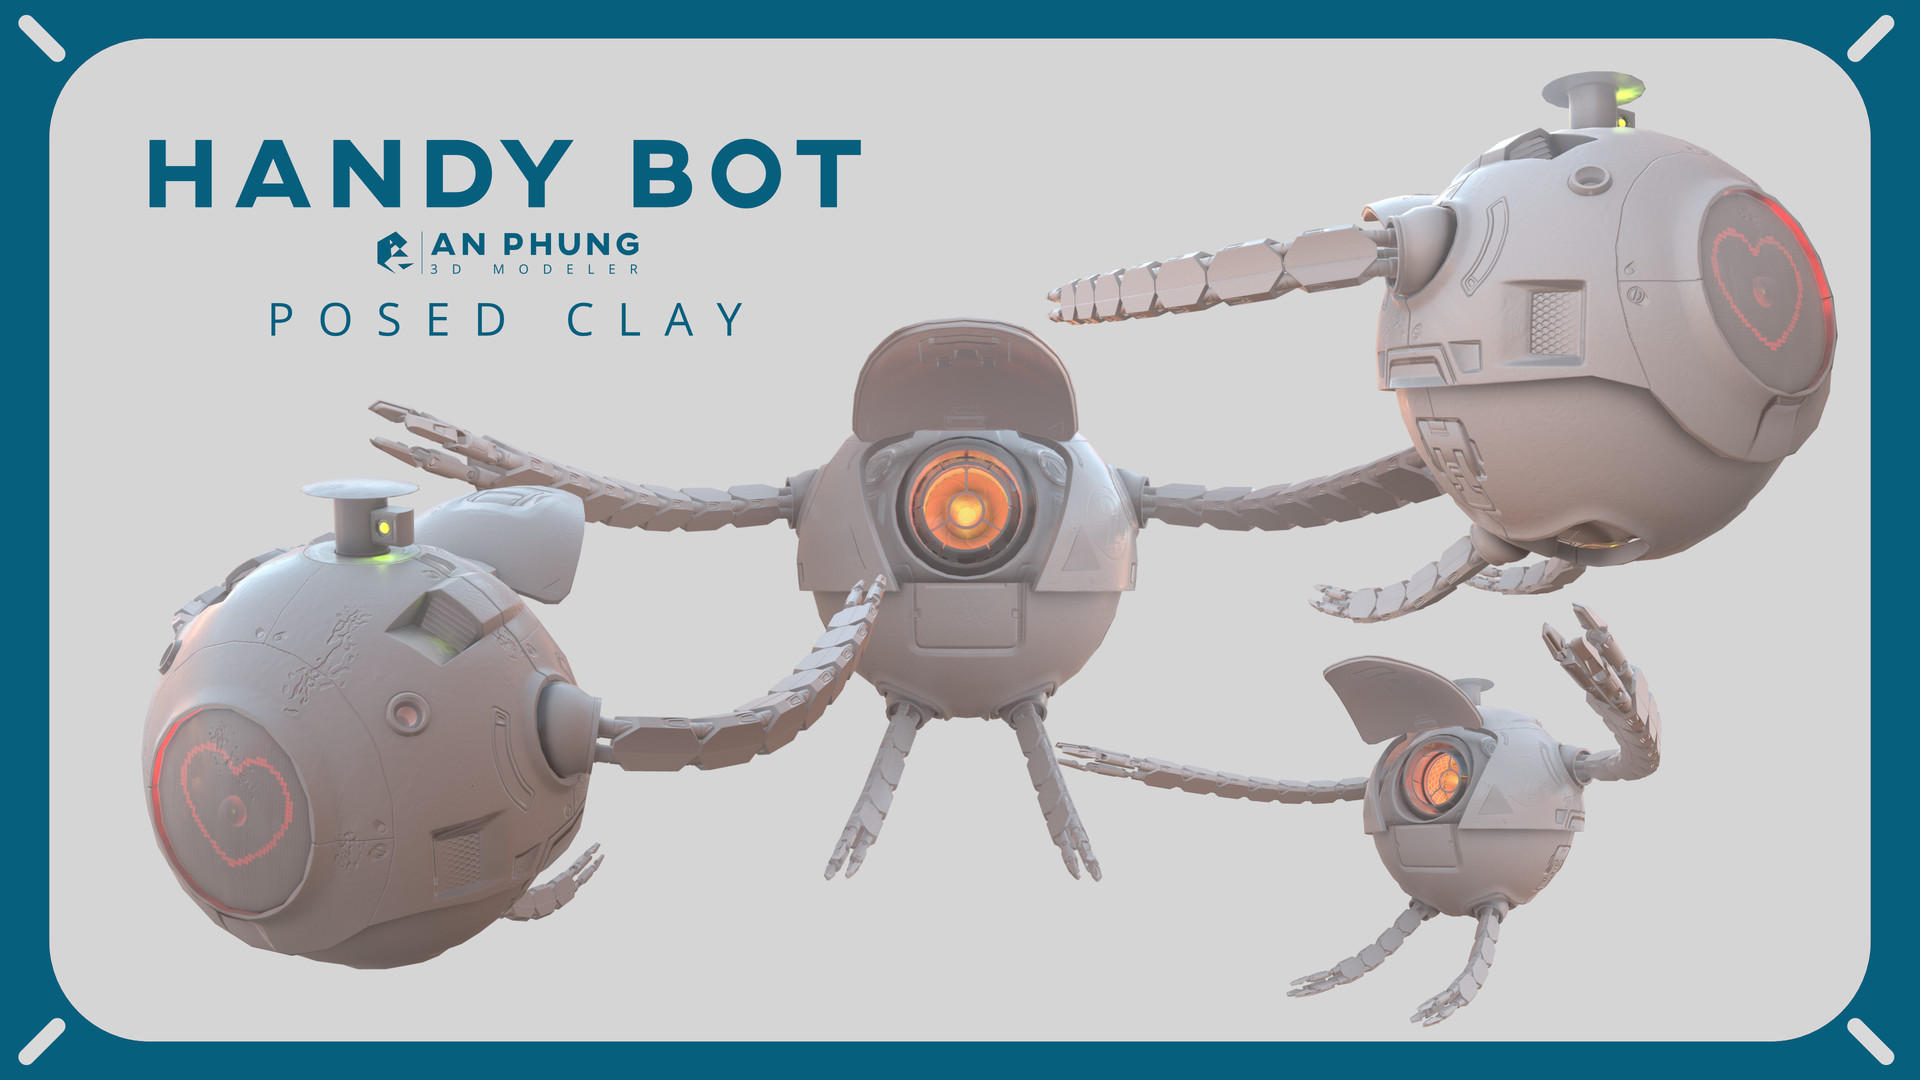 An phung phung handybot final posed clay